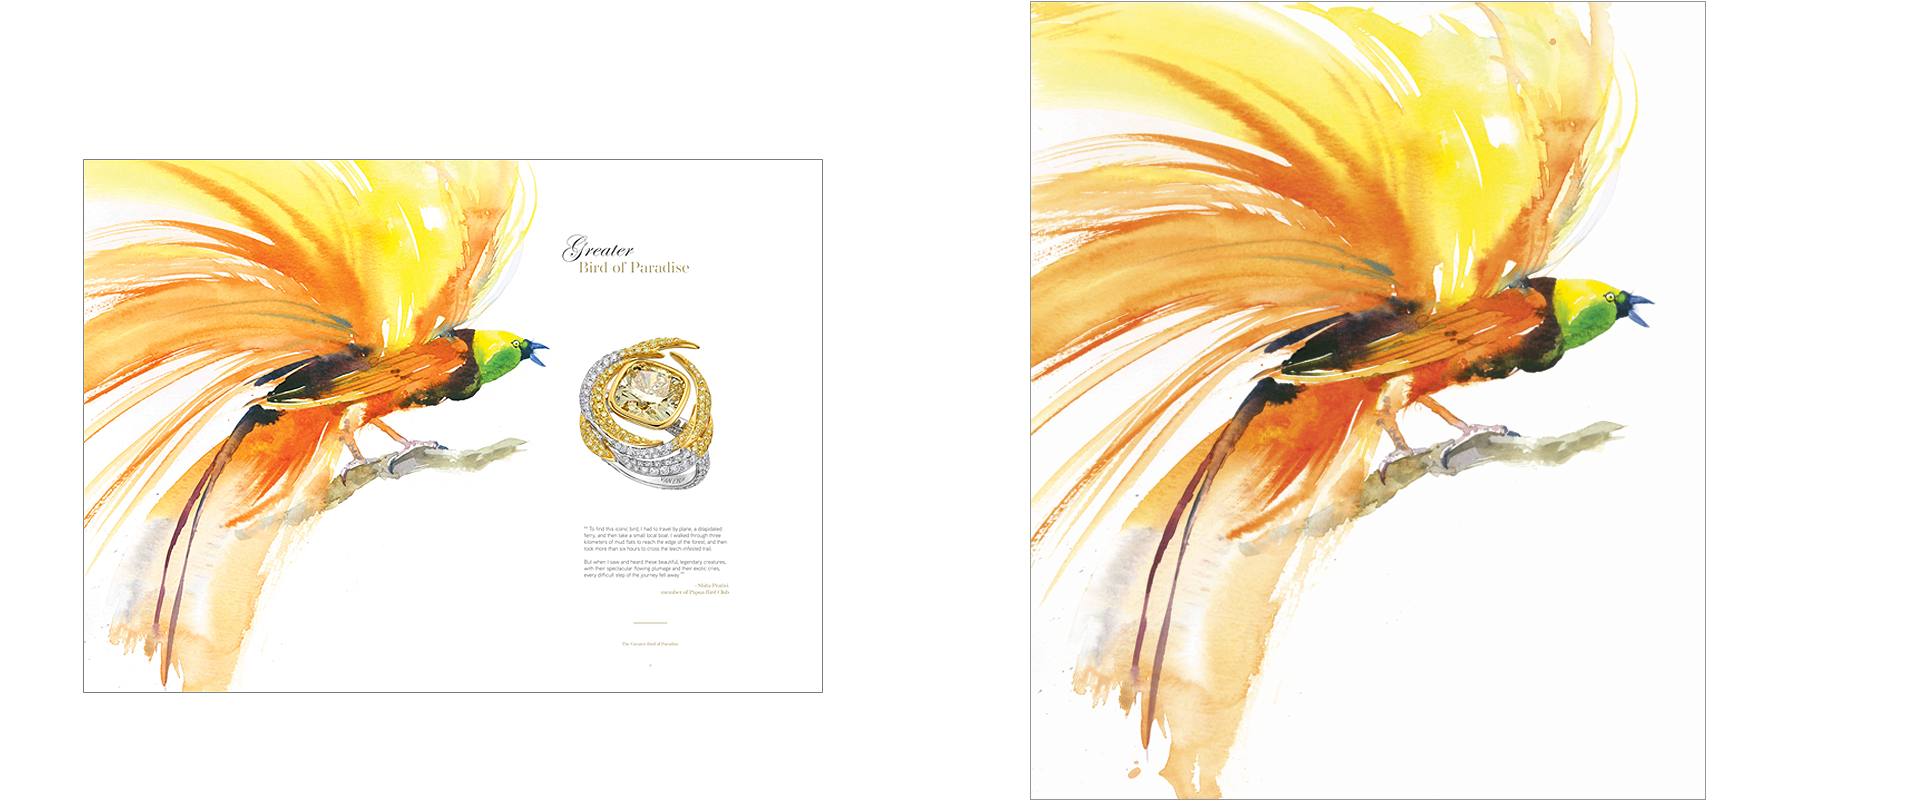 Van Eyck Fine Jewelry, the Birds of Paradise series